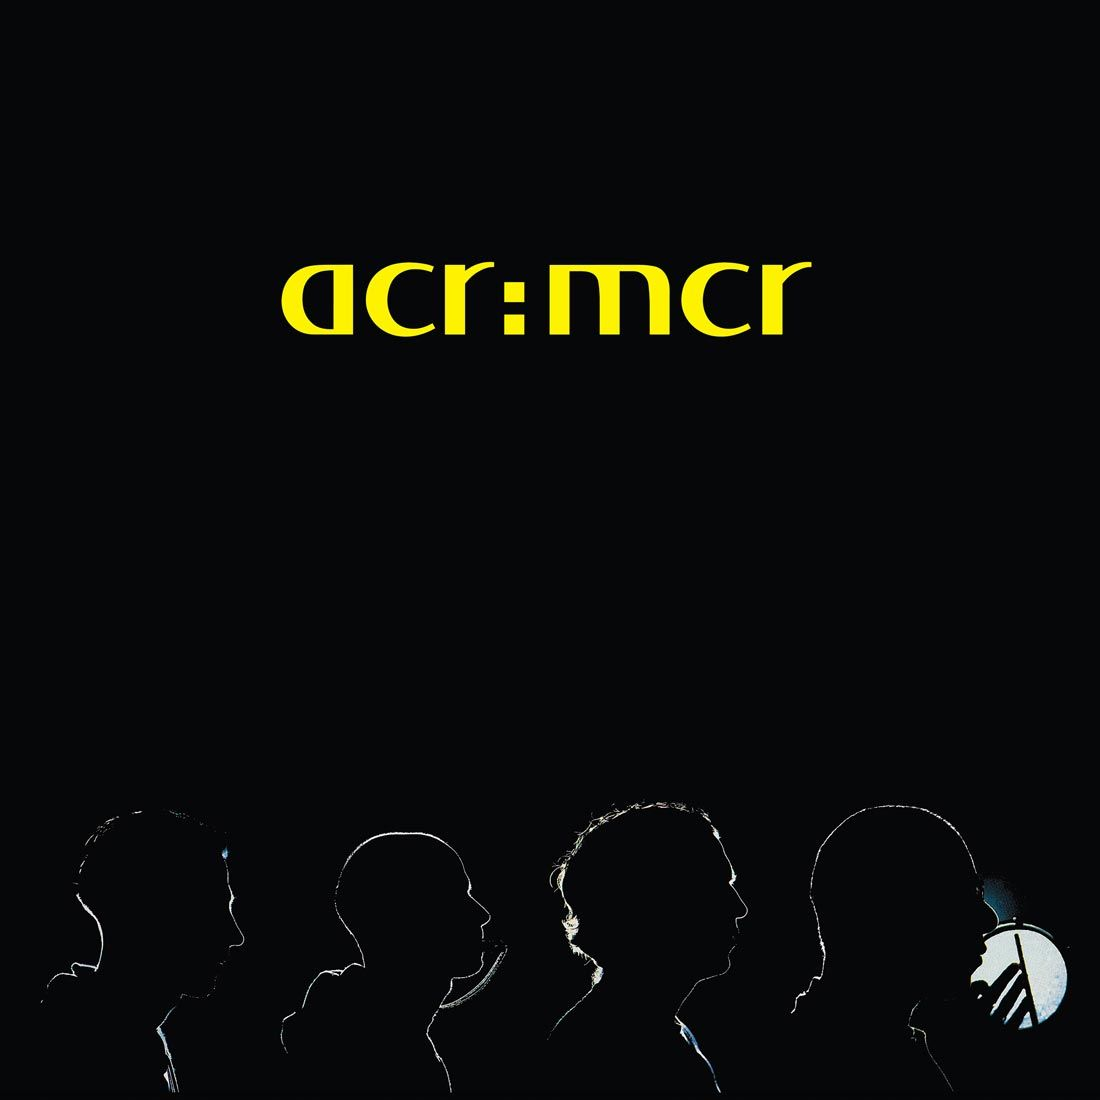 A Certain Ratio - ACR:MCR - A Certain Ratio